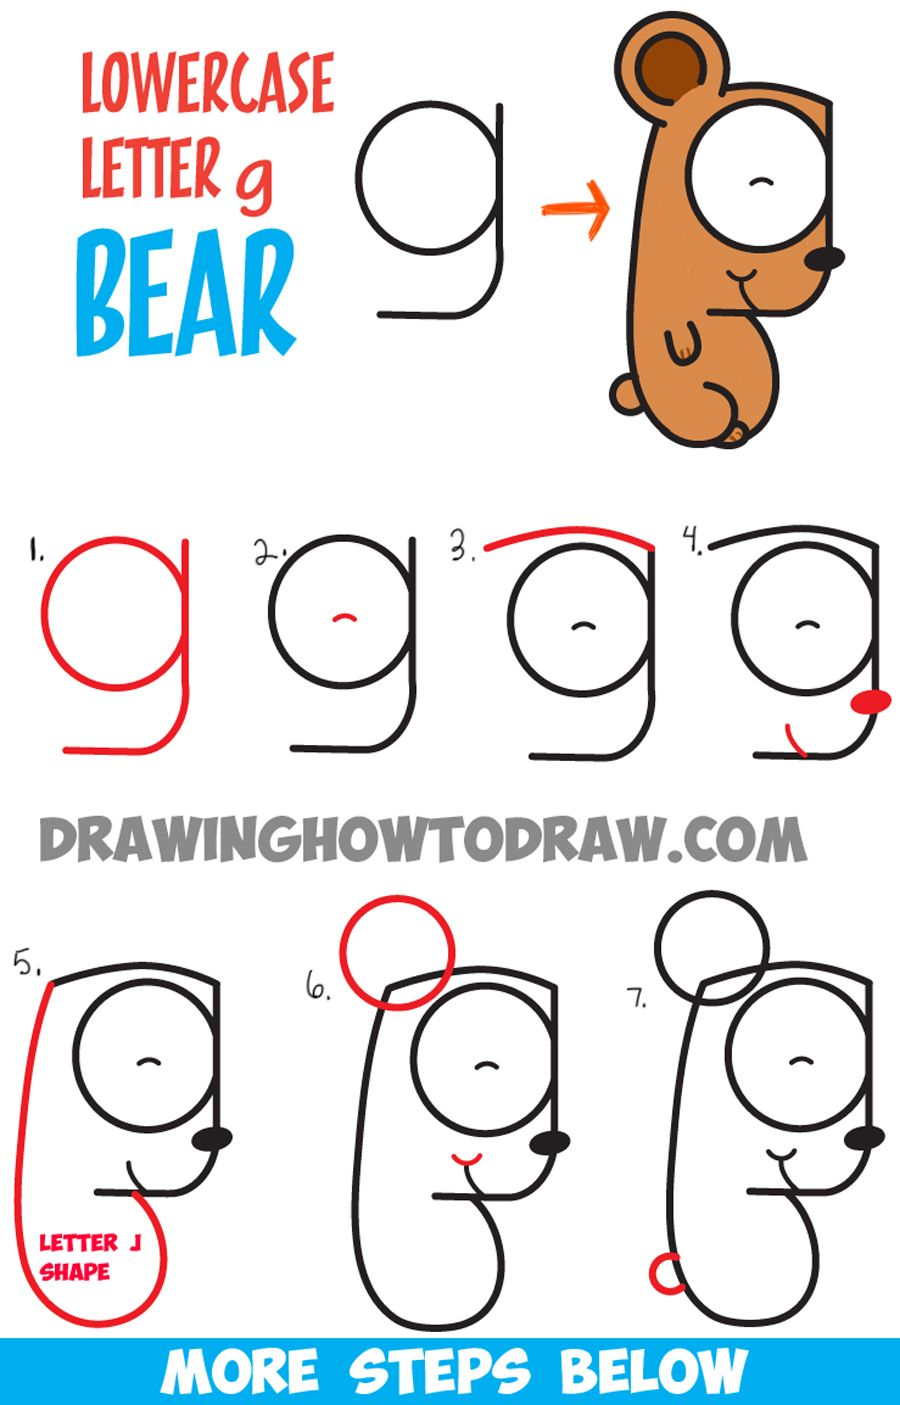 900x1405 How To Draw Cartoon Bear Cub From Lowercase Letter G